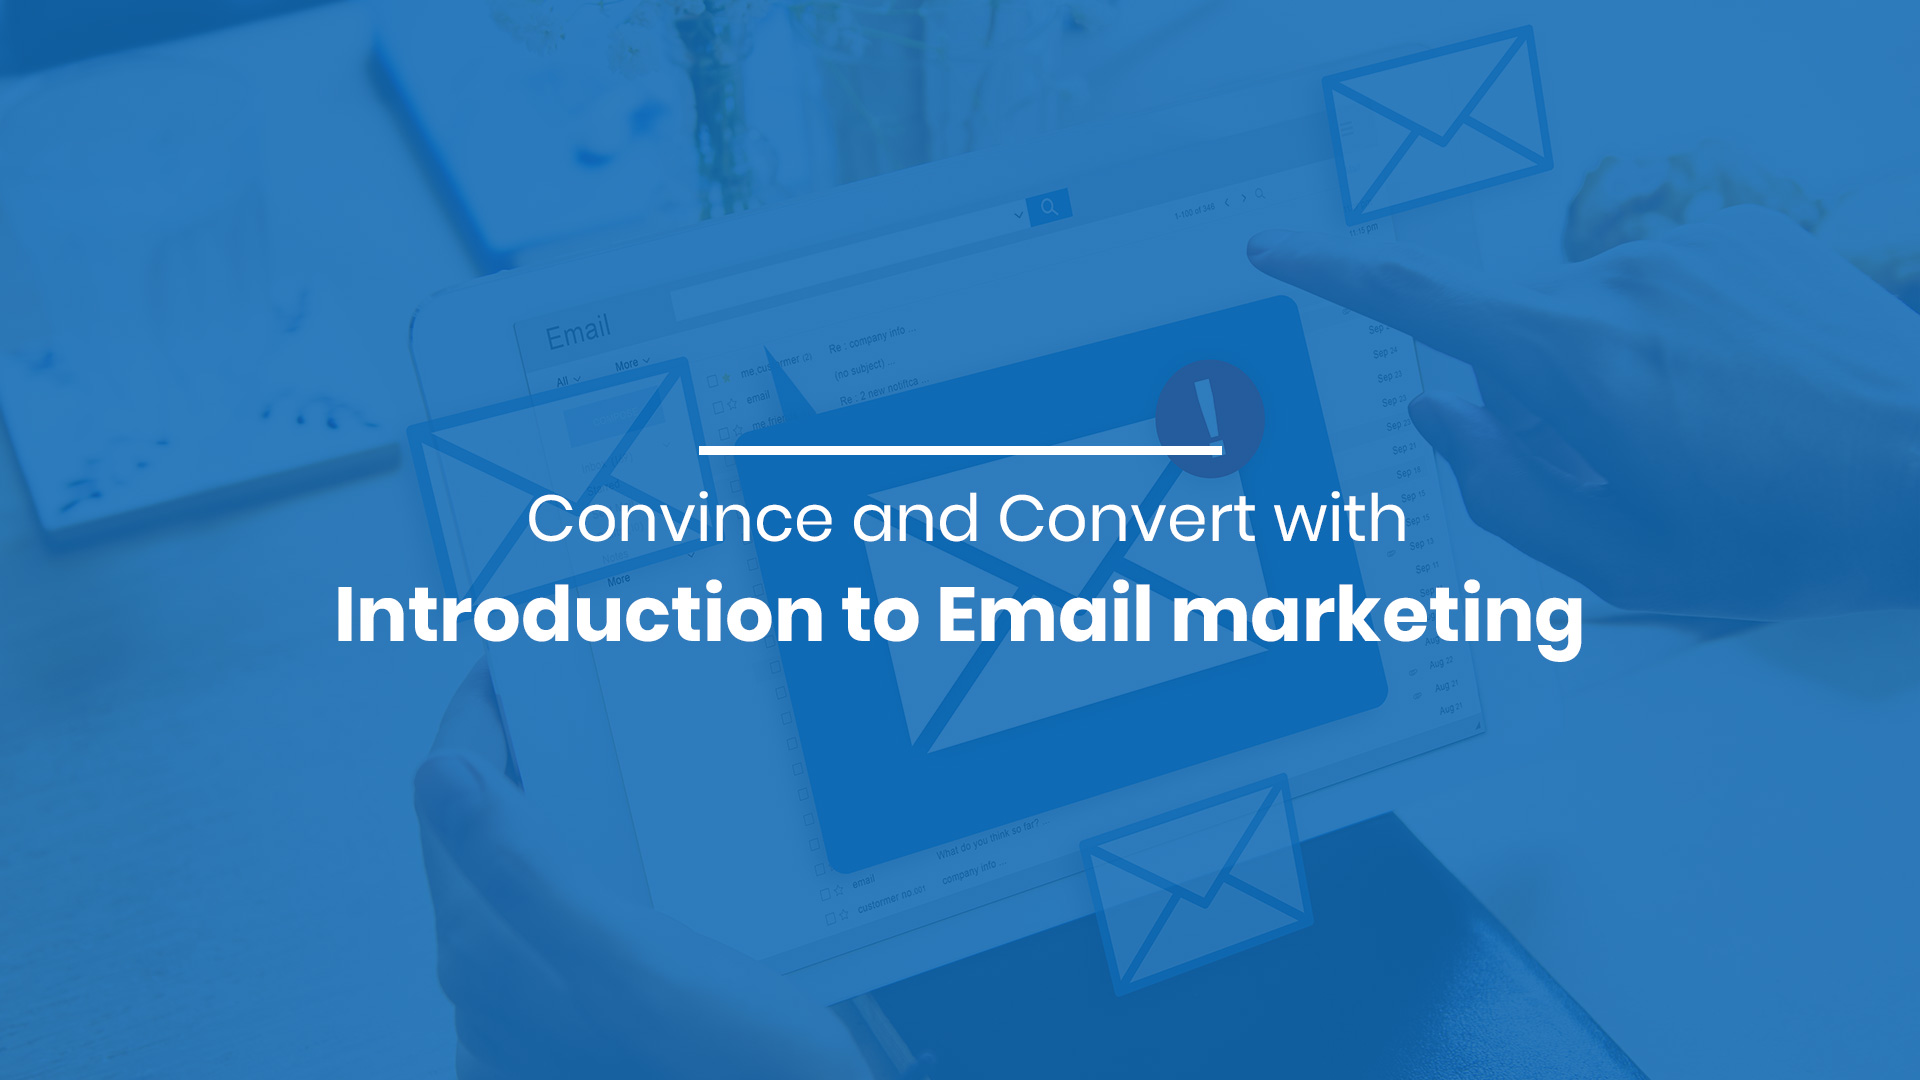 Convince and Convert with an Introduction to Email marketing